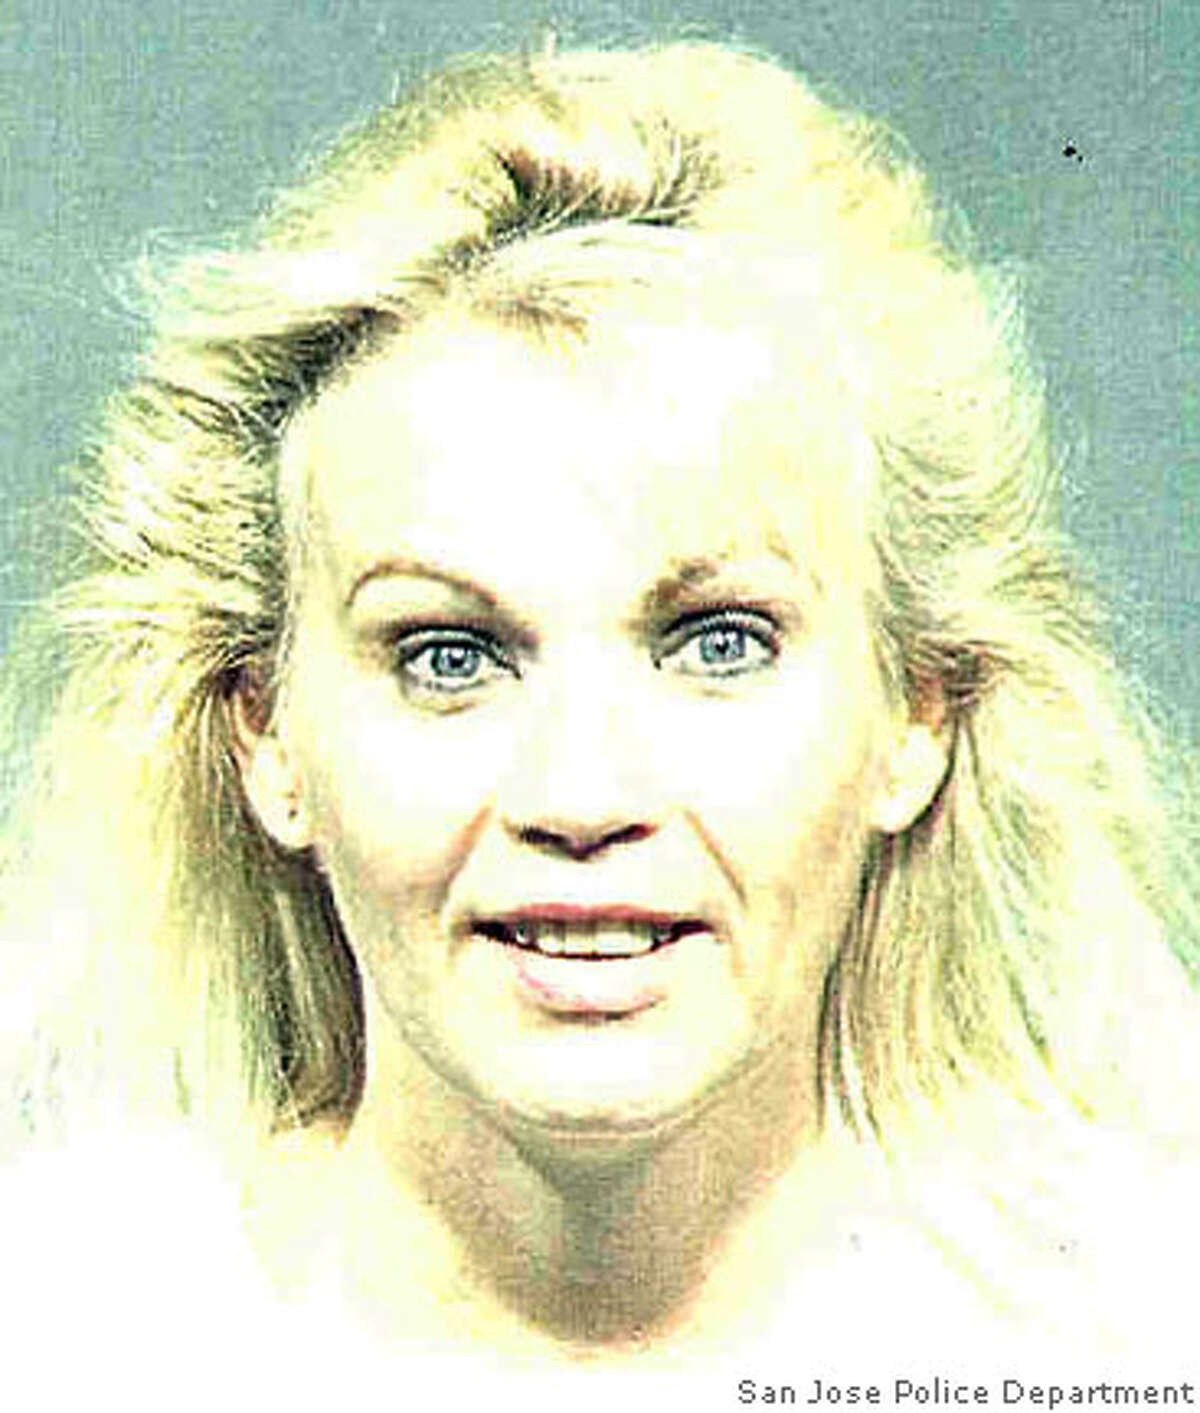 Susan Hjeltness, her son and a companion to posed as real estate buyers, police say. Photo courtesy of San Jose Police Department